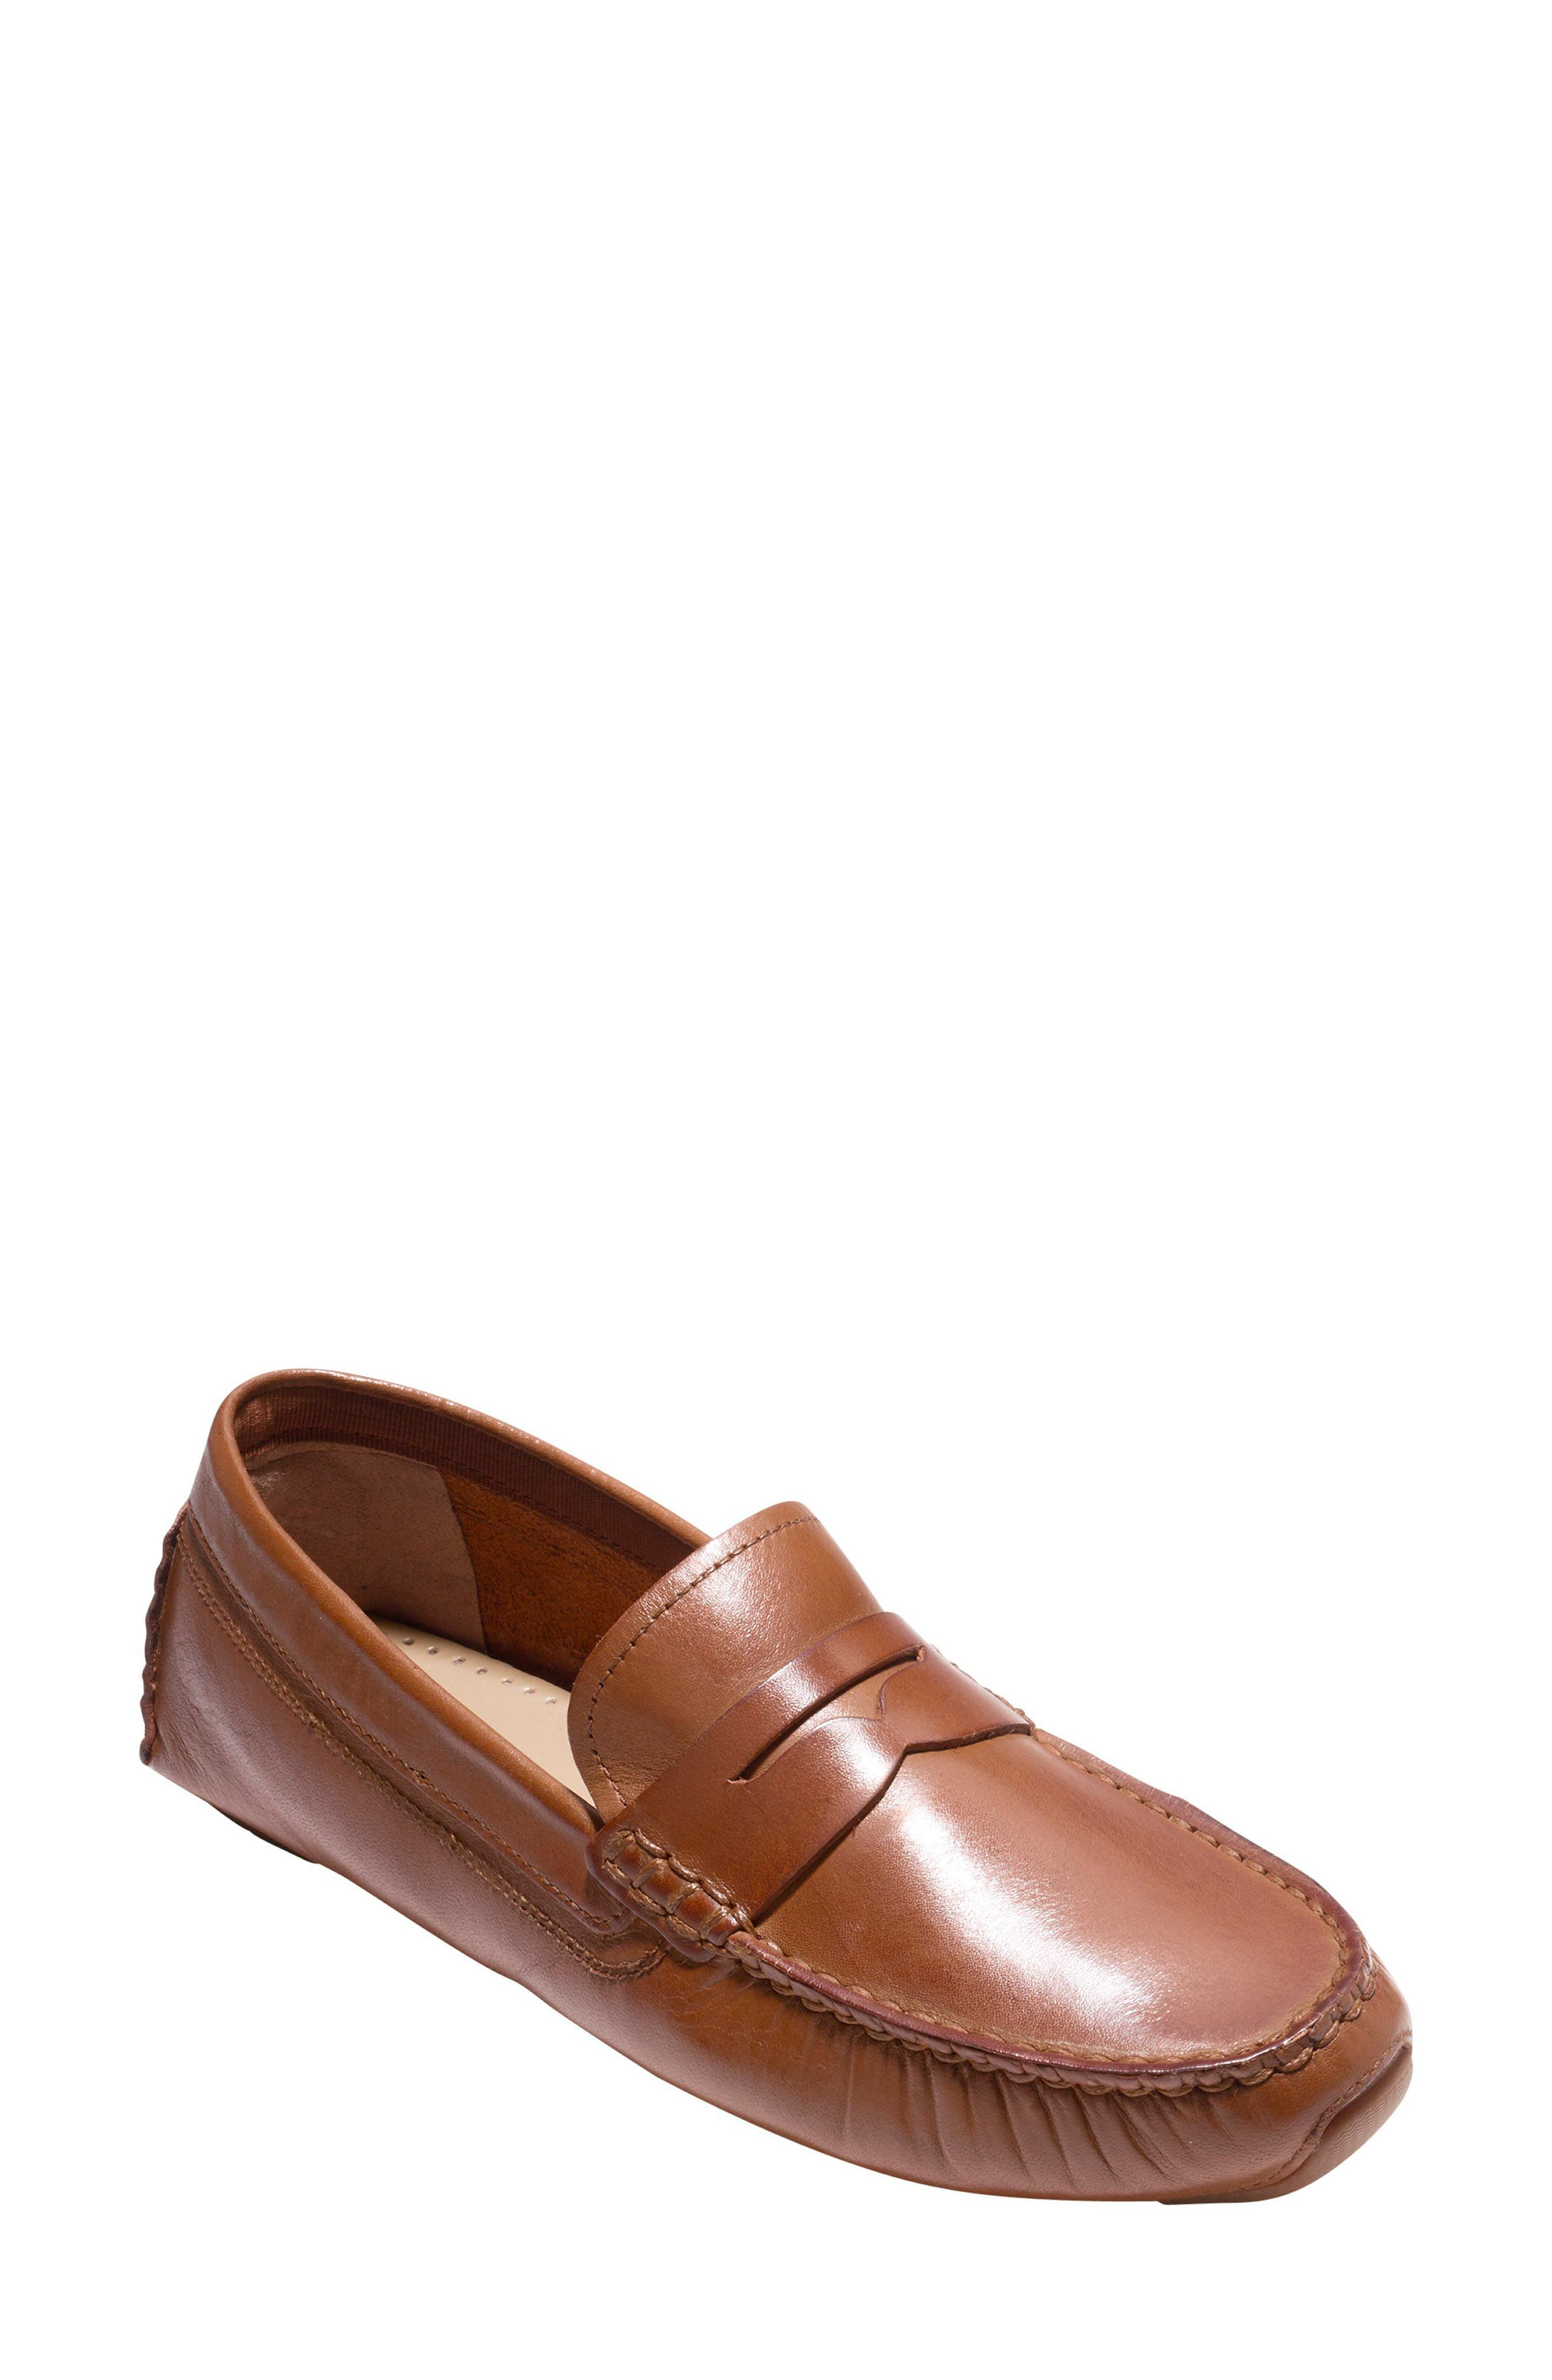 Rodeo Penny Driving Loafer,                         Main,                         color, 200